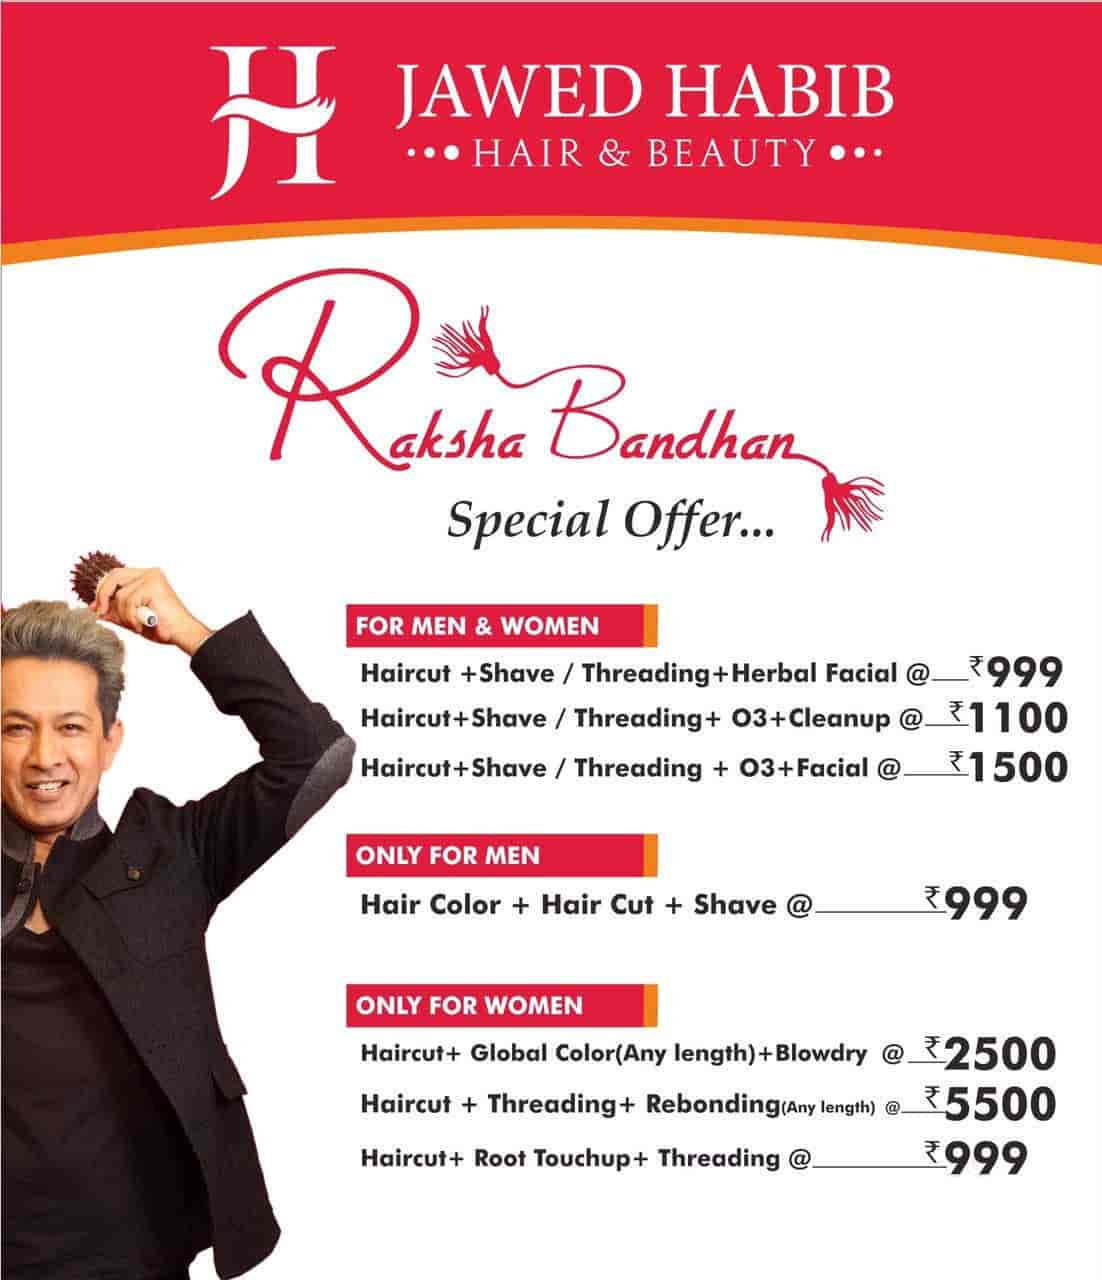 Jawed Habib Hair Beauty Godowlia Javed Habib Hair Beauty